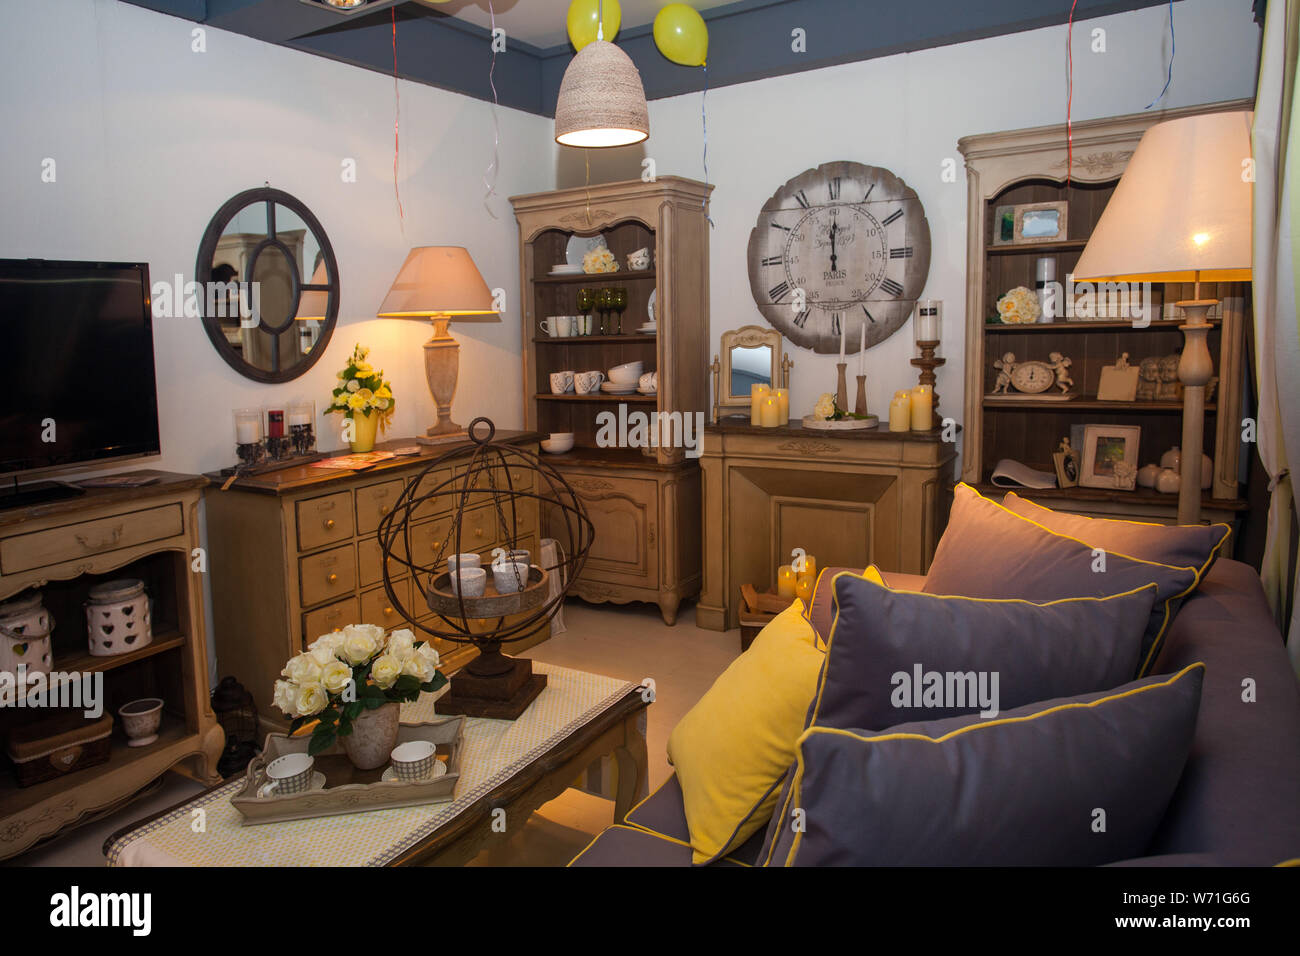 Inside view of room inside home. Stock Photo